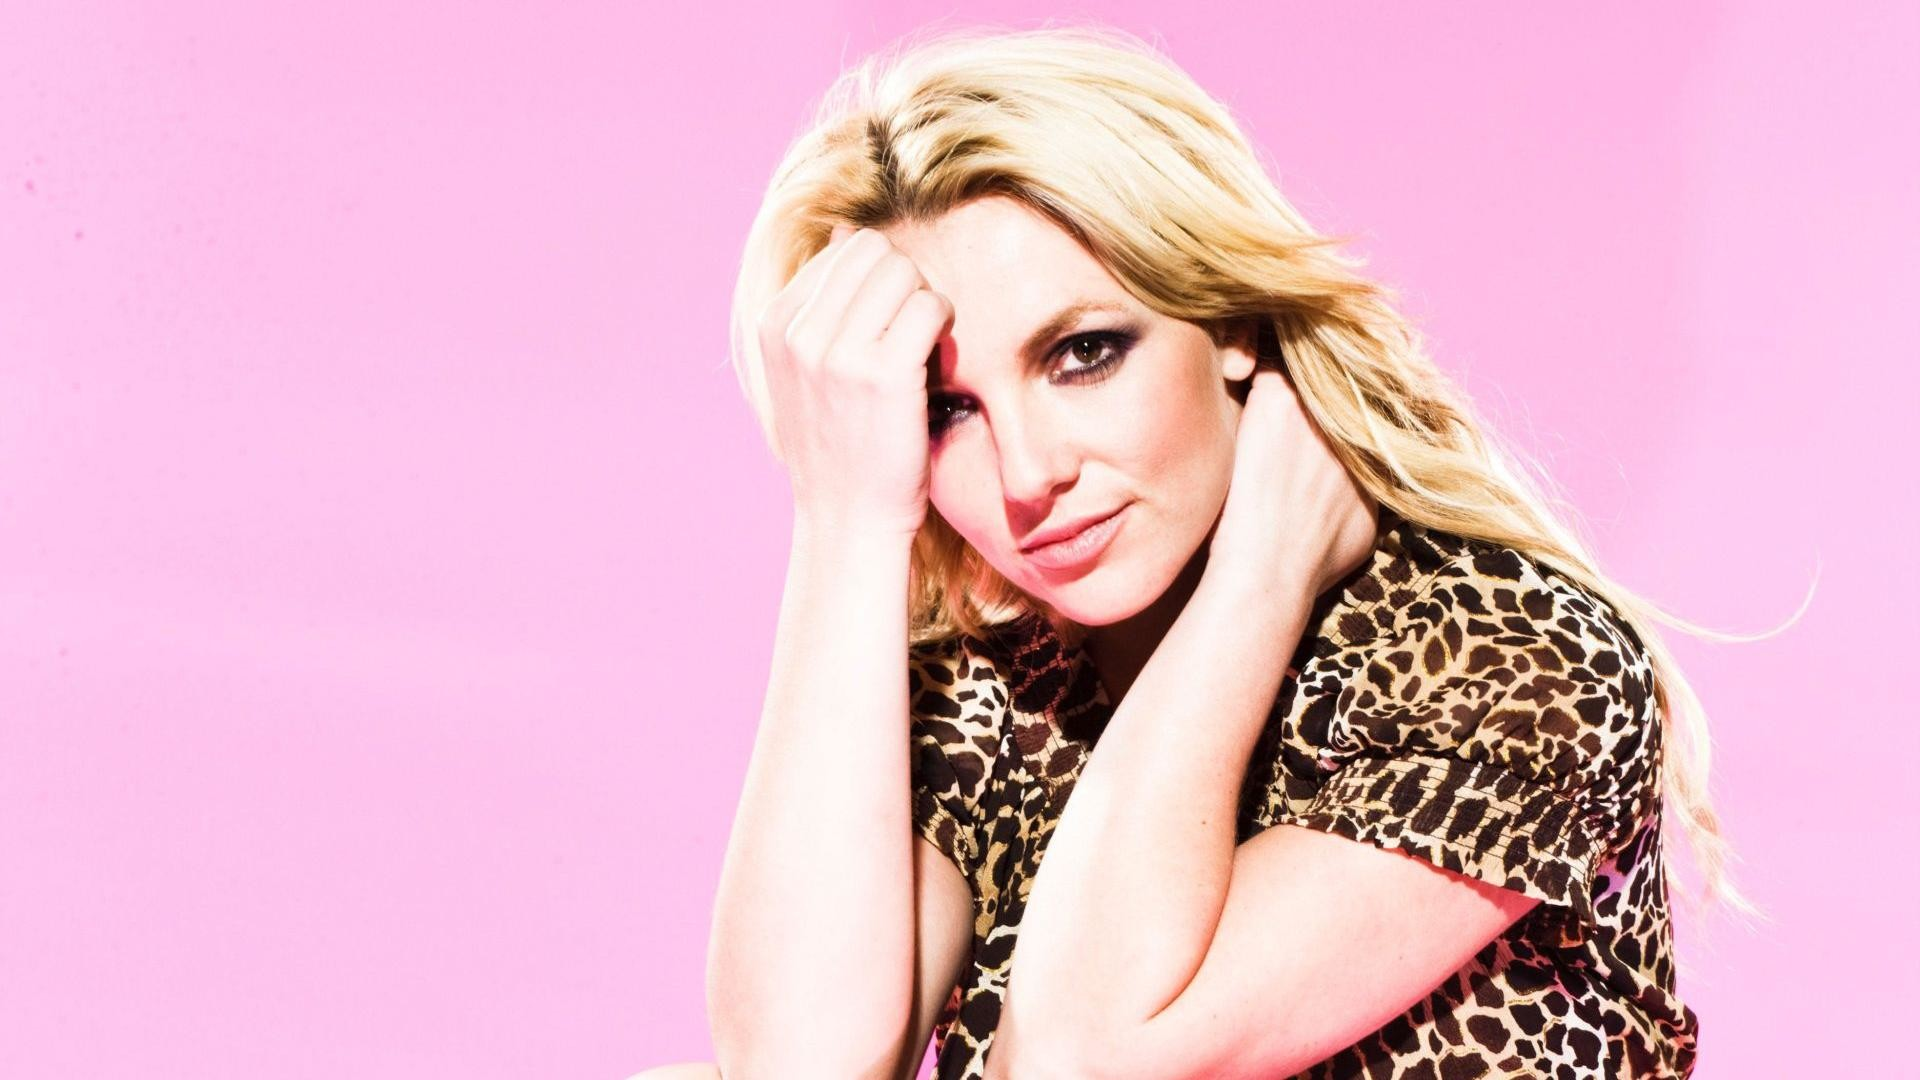 1920x1080 Britney Spears Wallpaper 8 - 1920 X 1080